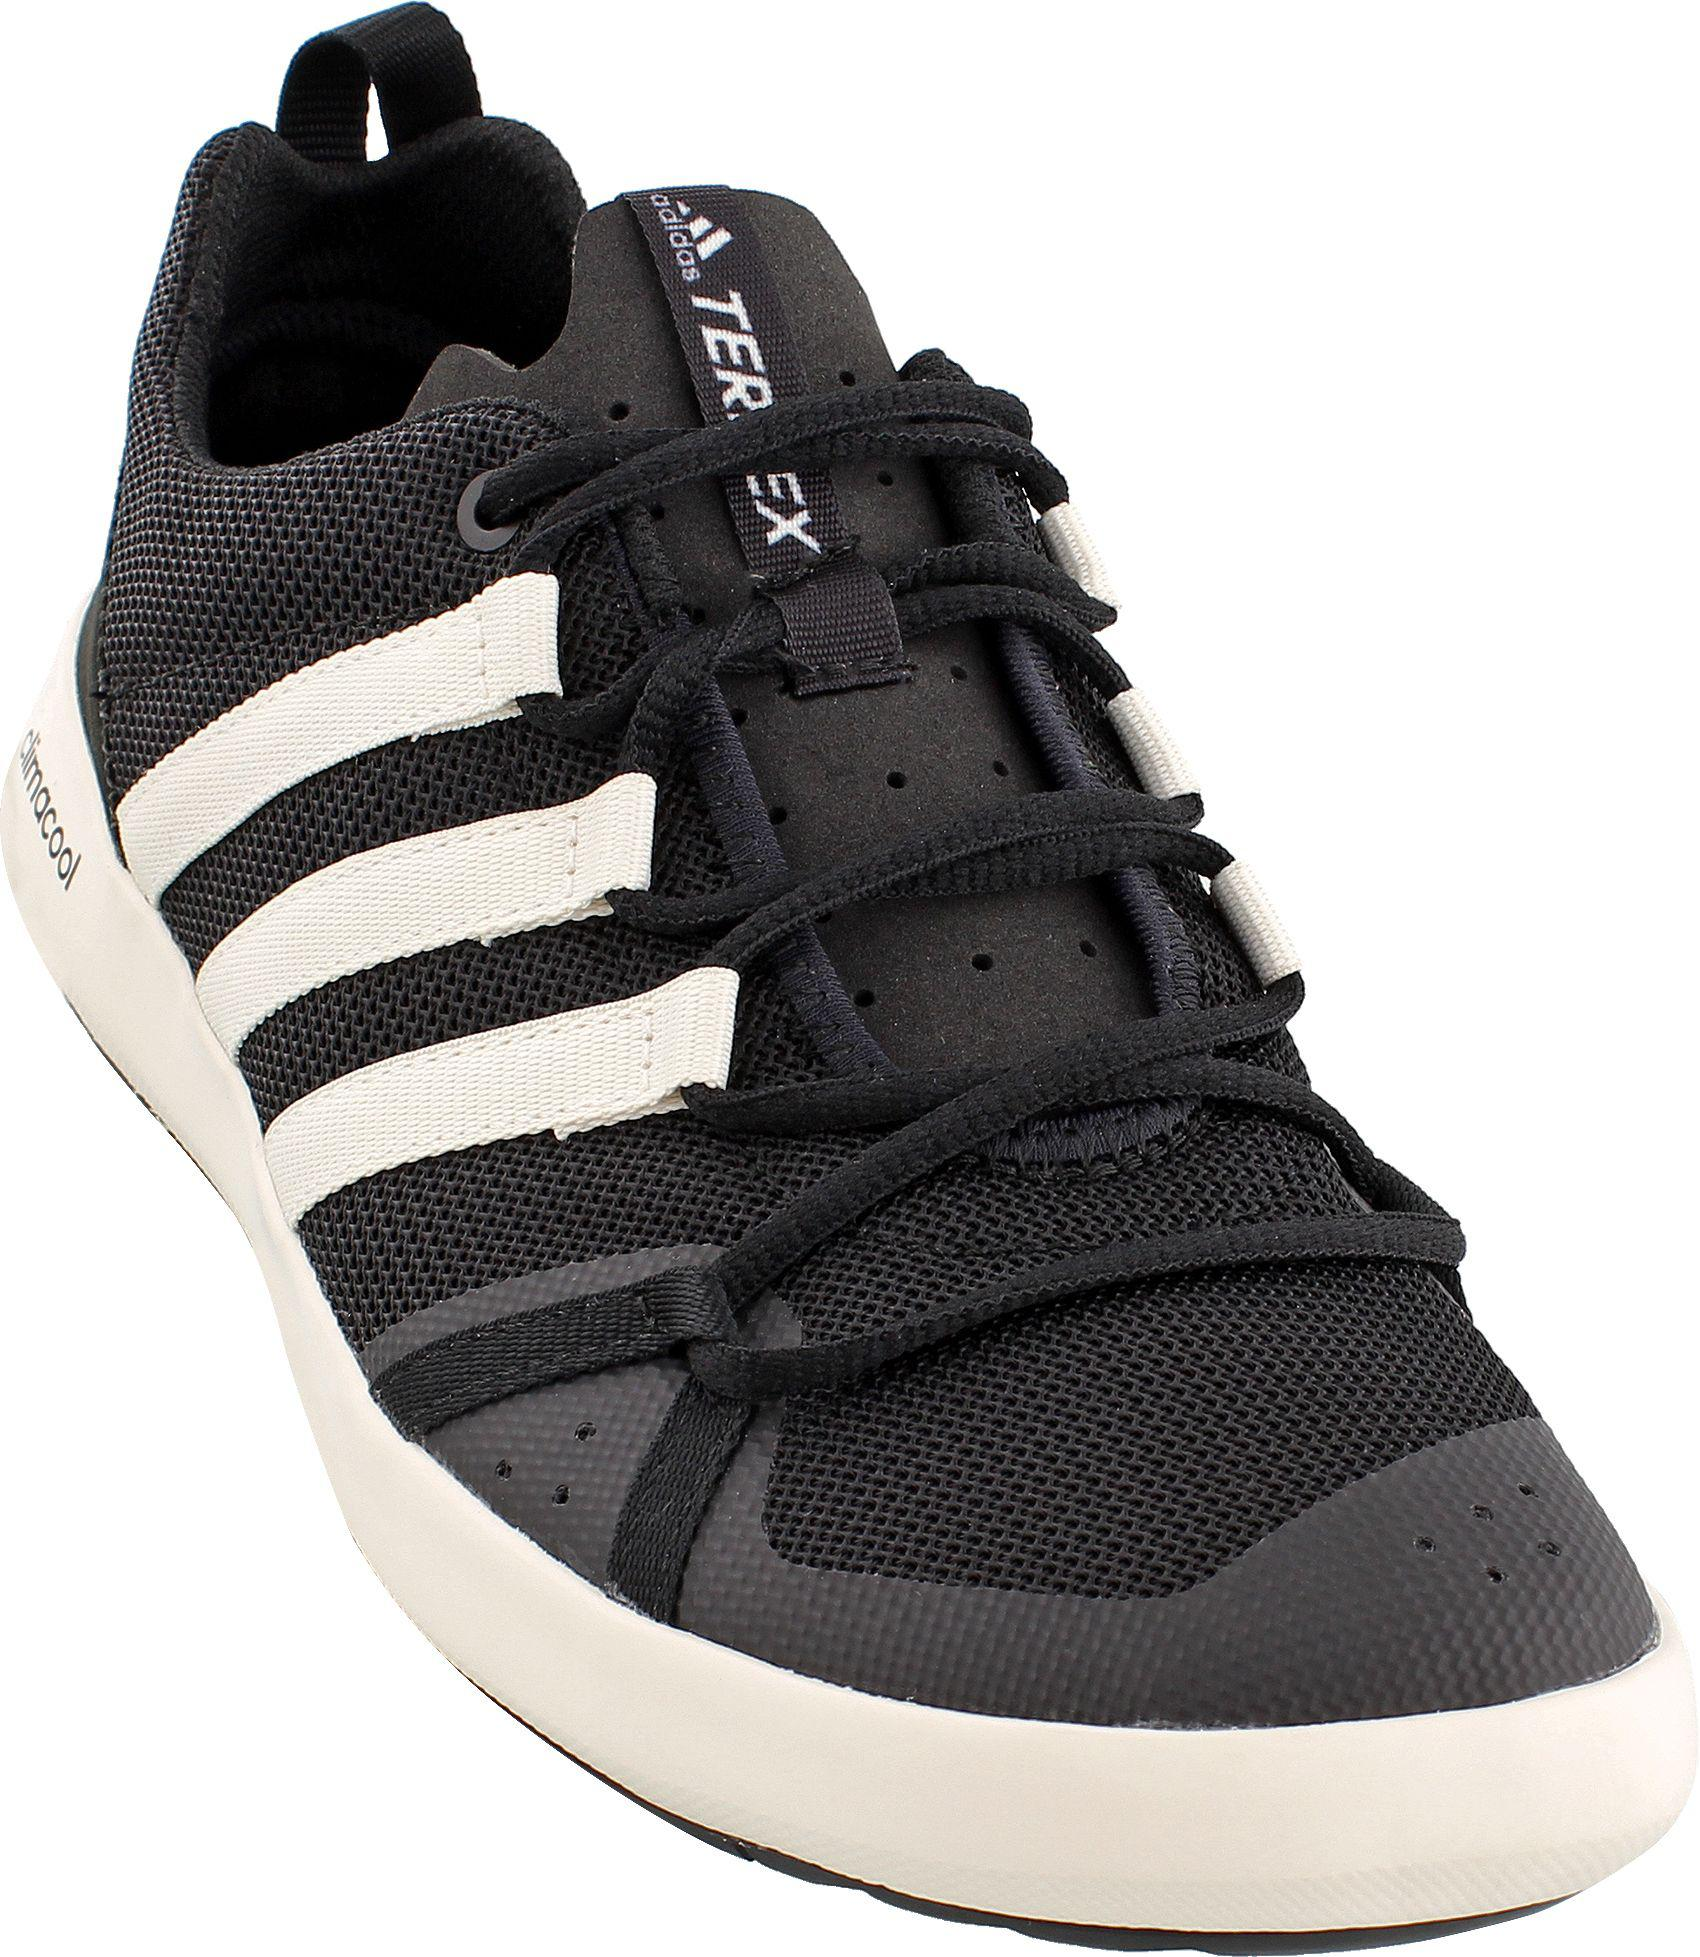 fcd70440d6aff3 Lyst - adidas Outdoor Terrex Climacool Boat Shoes in Black for Men